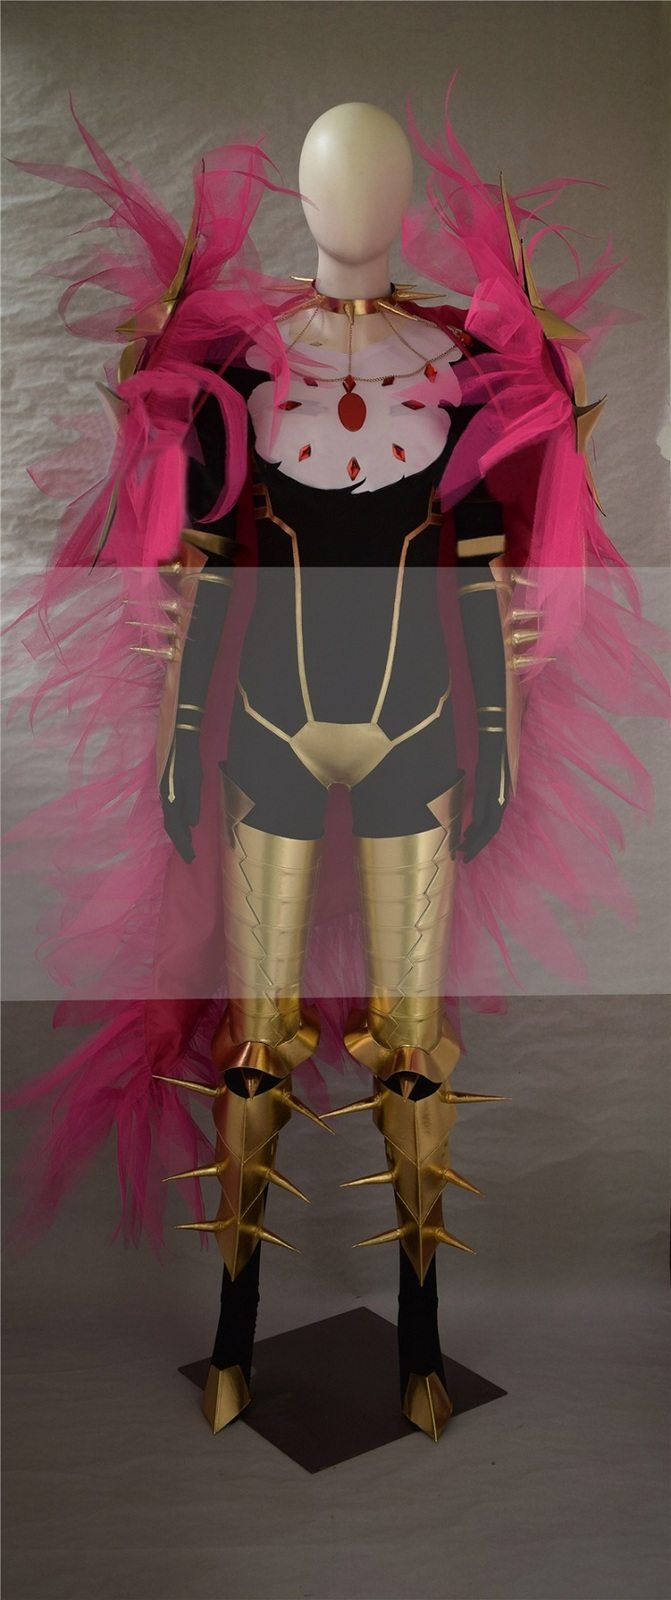 Fate apocrypha lancer of red karna cosplay costume for sale